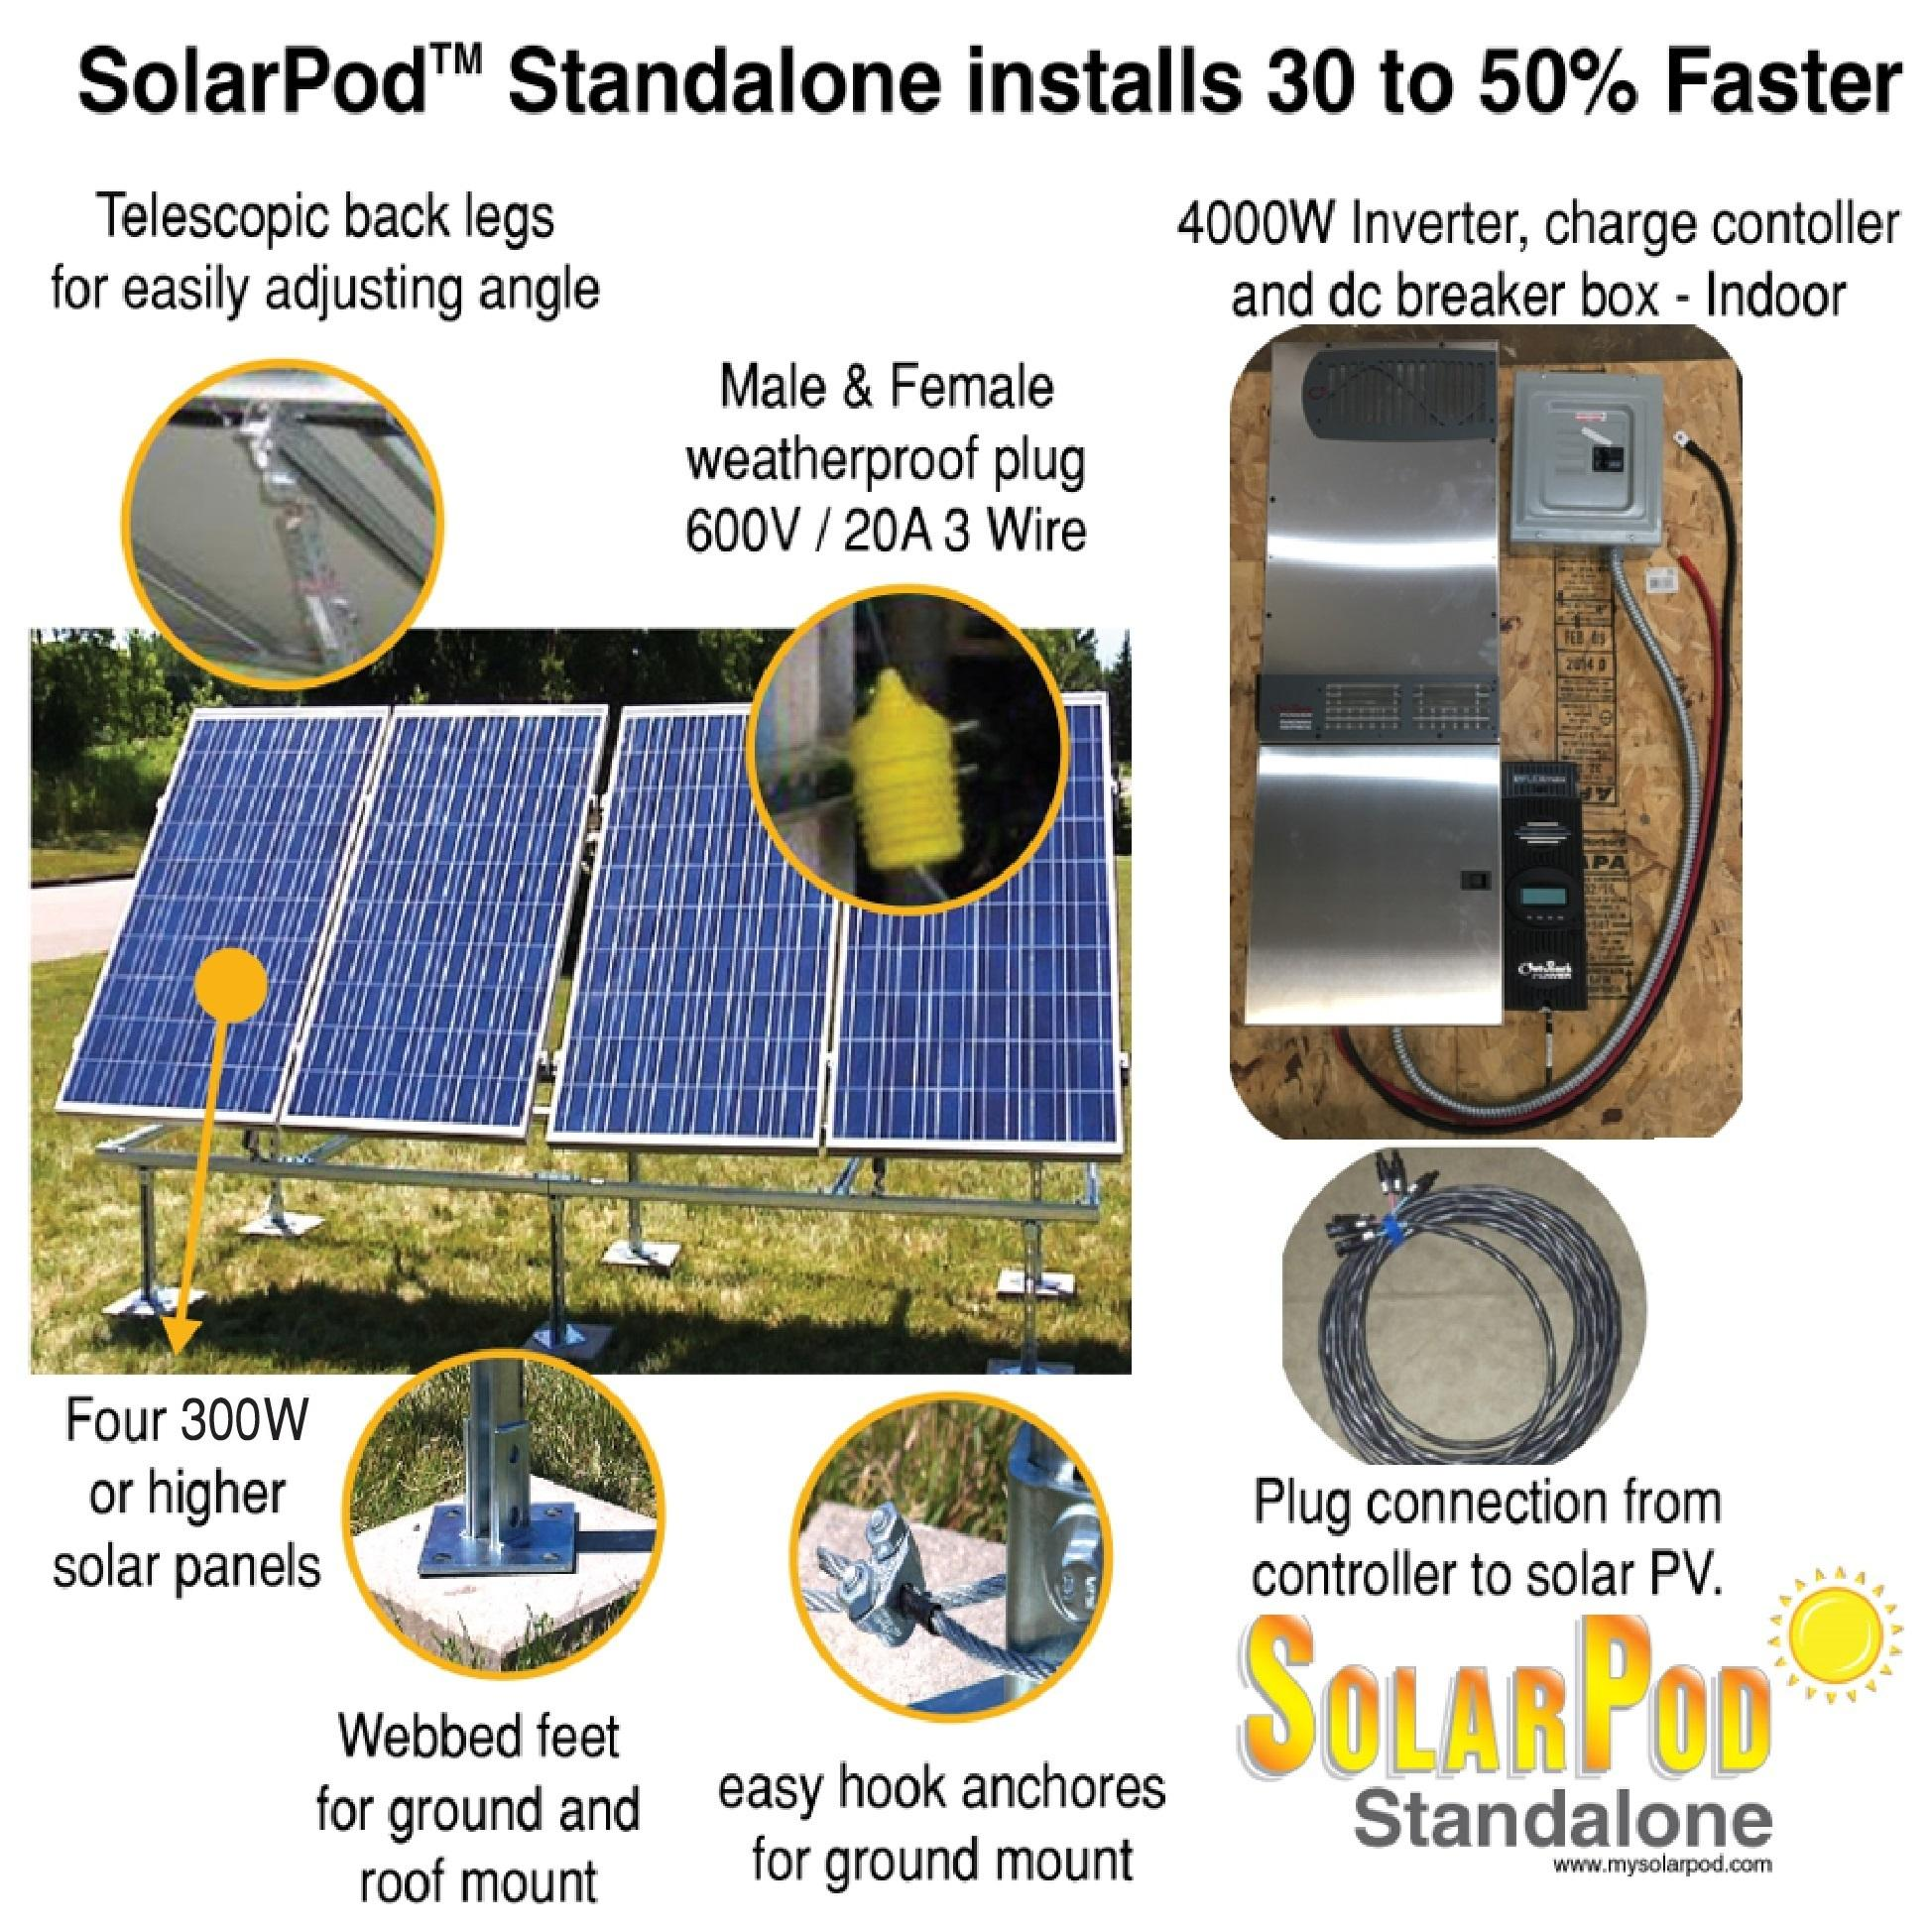 MODEL #1005 - SolarPod Standalone - 1.2kW Solar PV System; 4kW ... on off grid air conditioning, off grid lighting, off grid electrical systems, off grid battery, off grid blueprints, off grid tools,